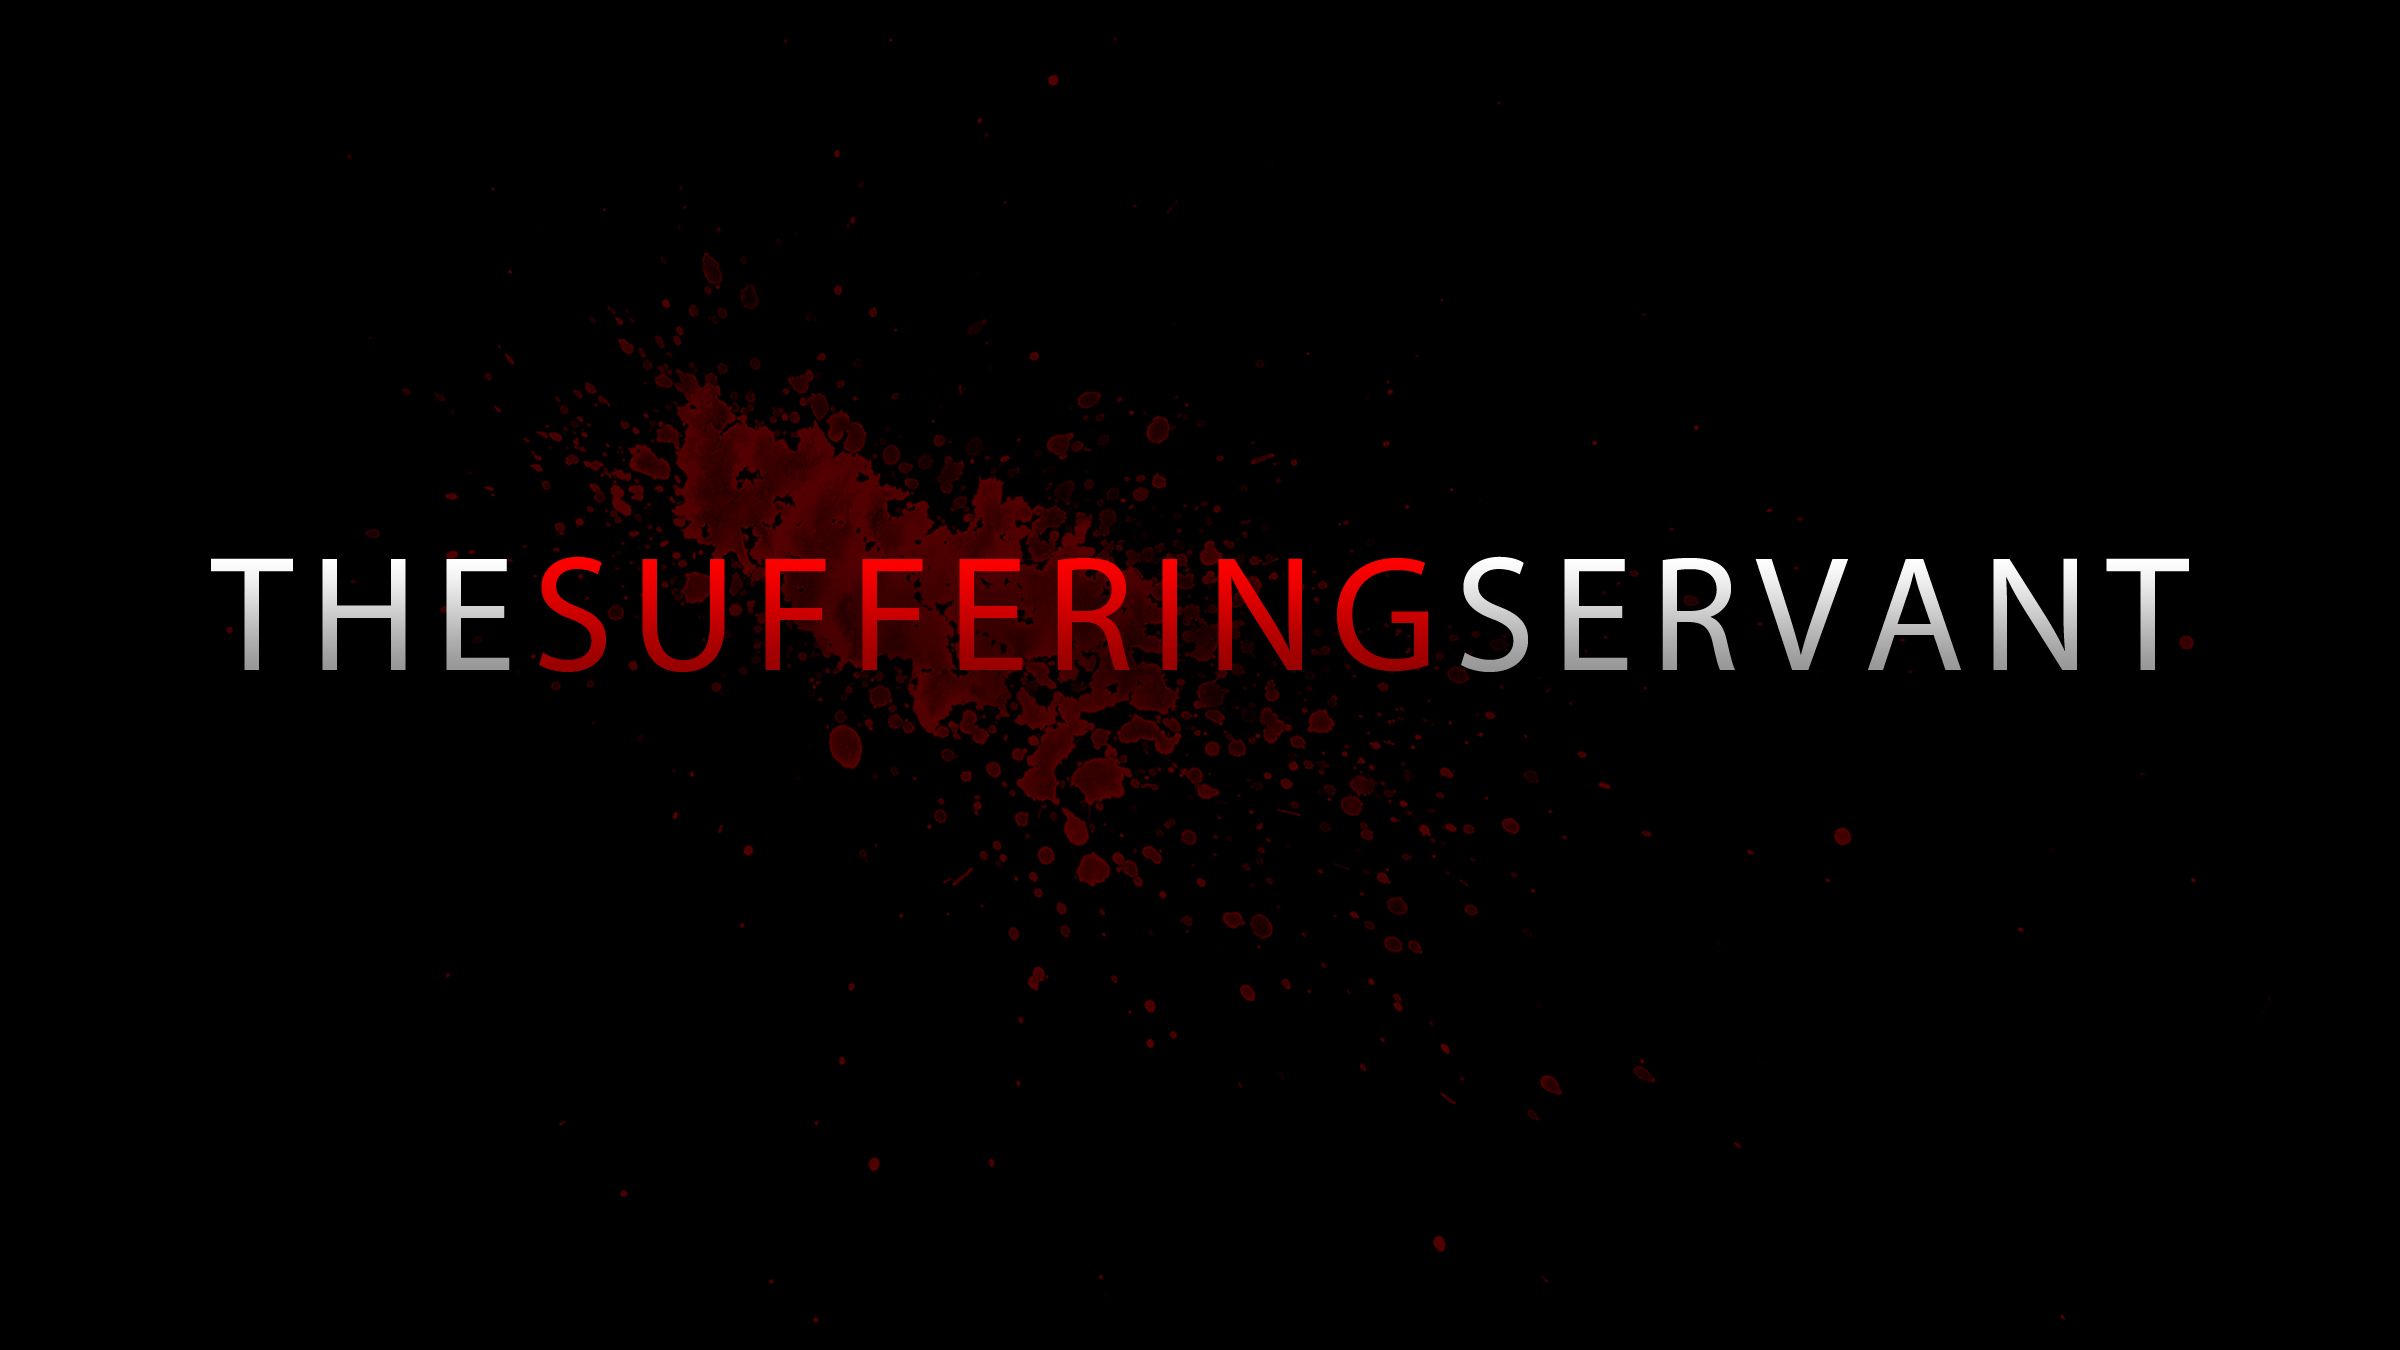 the suffering servant prophecied 600 years before he was born